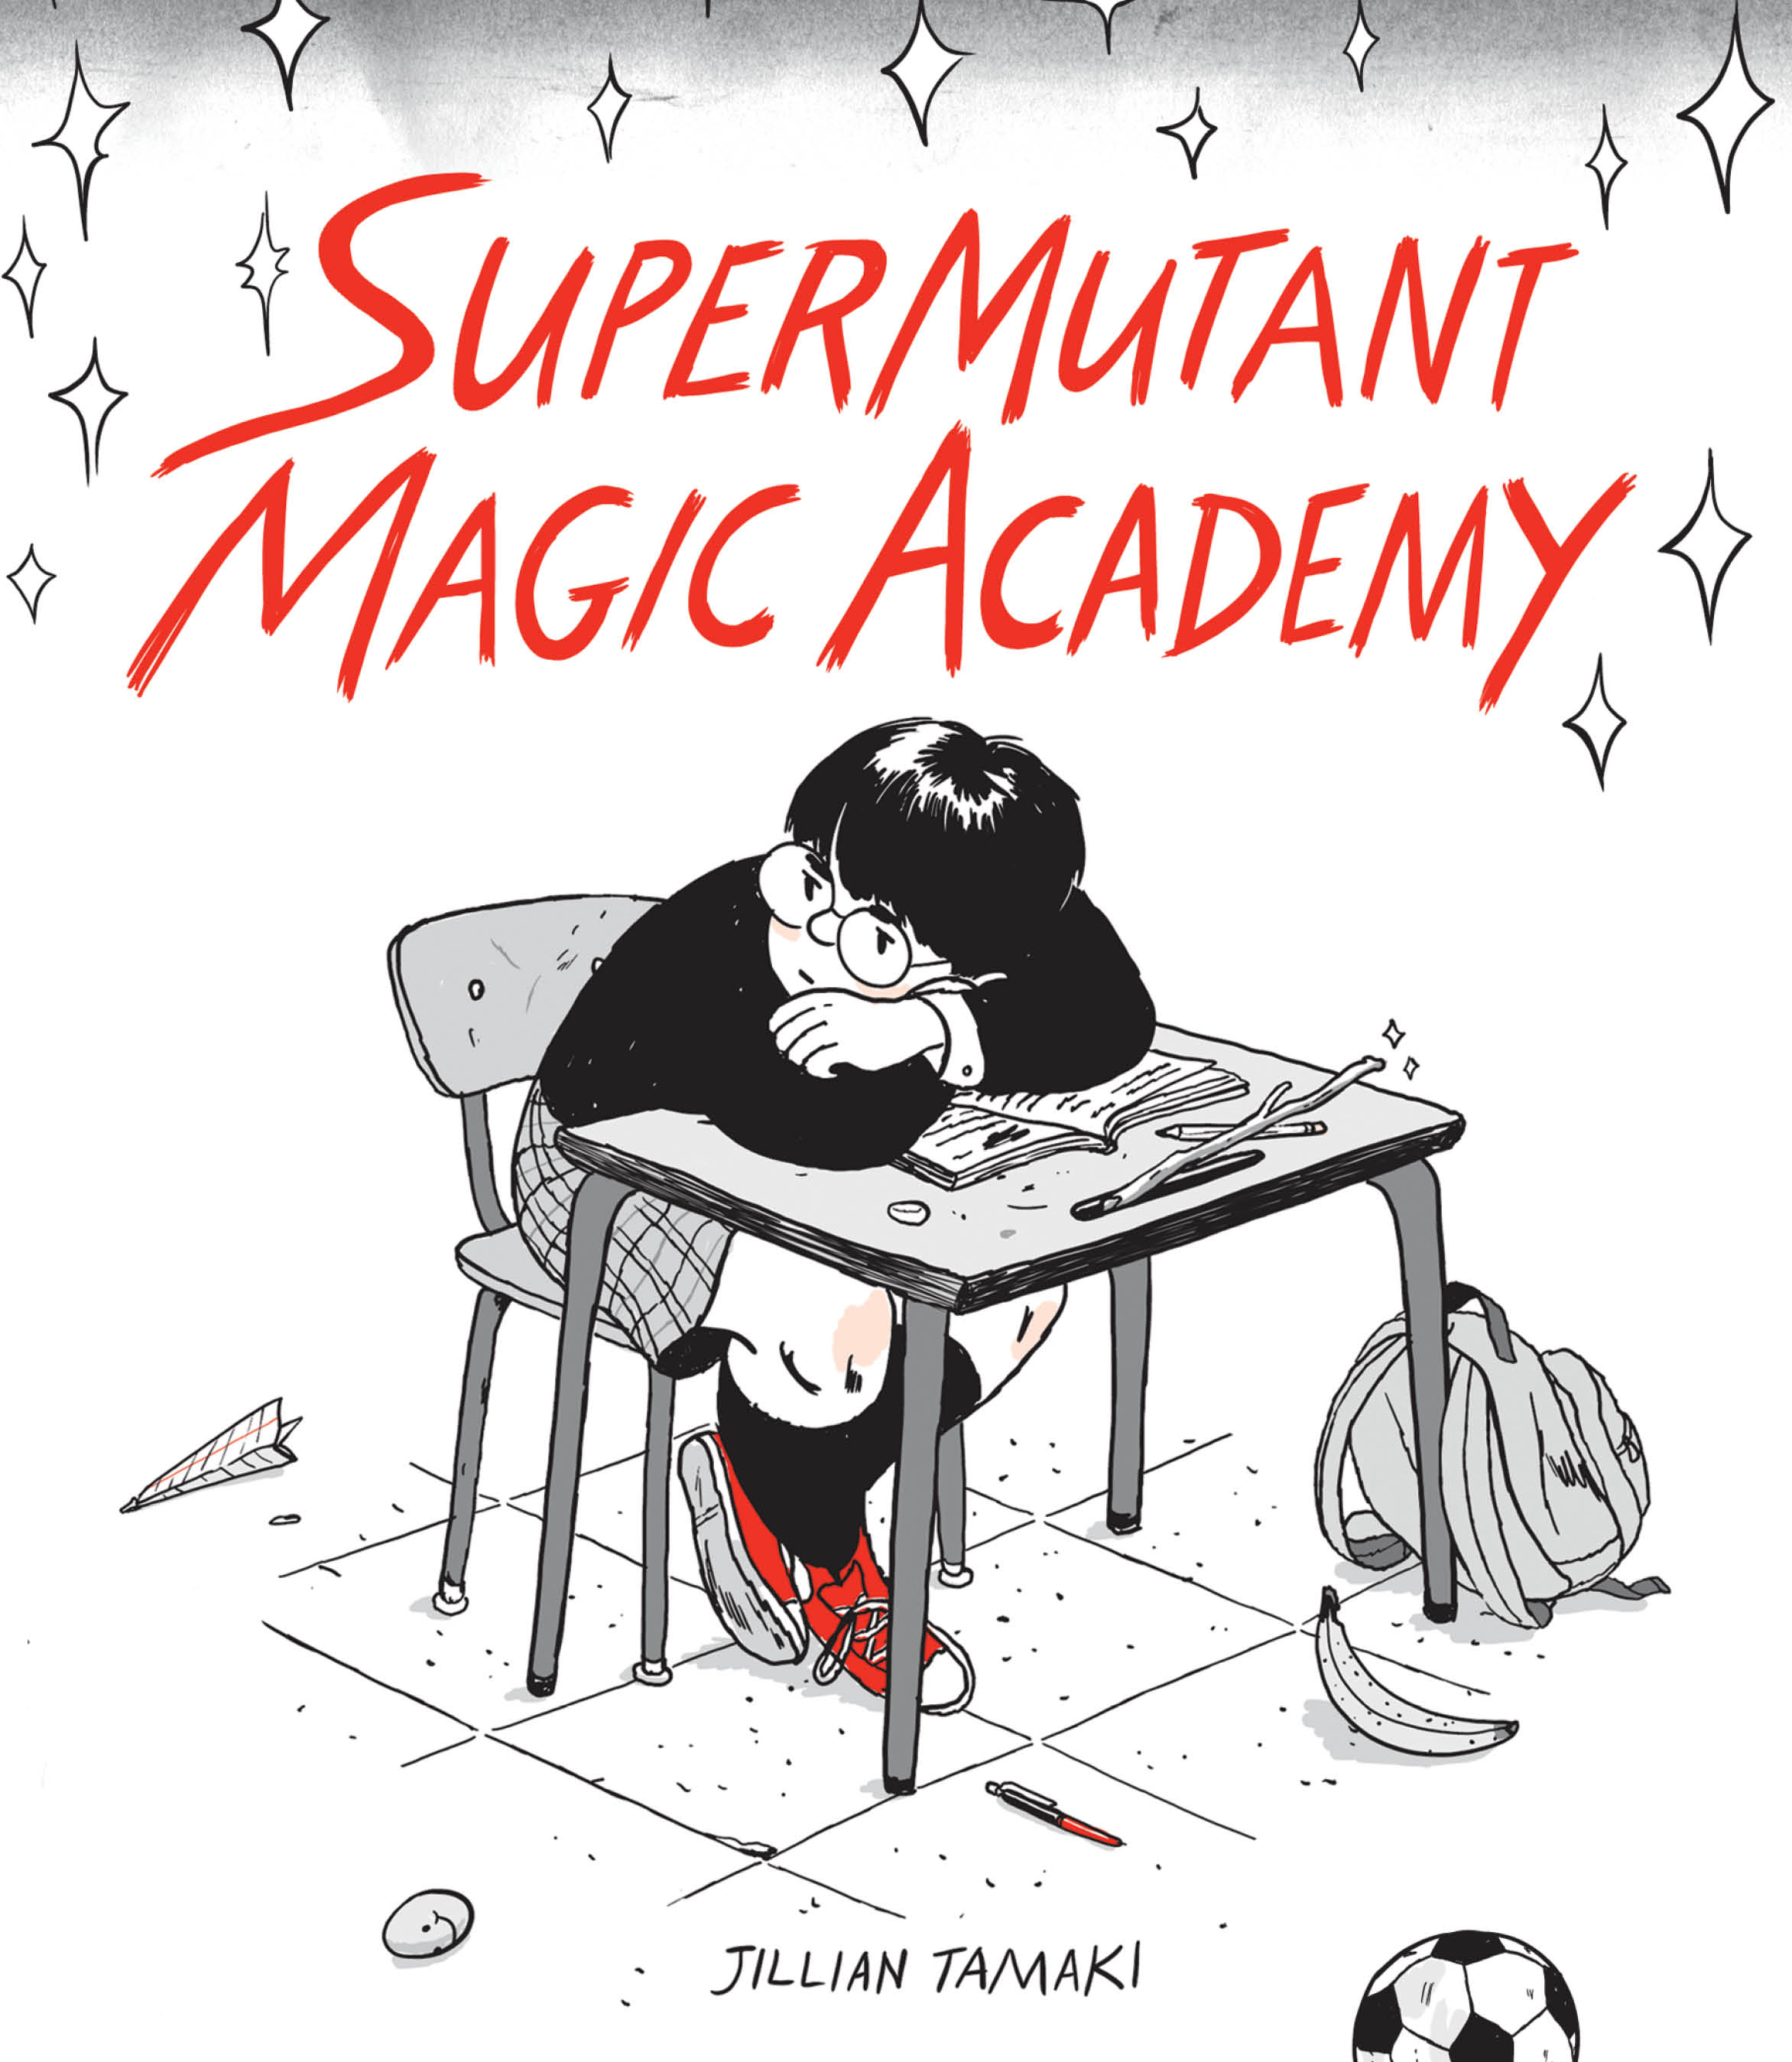 """SuperMutant Magic Academy"" by Jillian Tamaki."